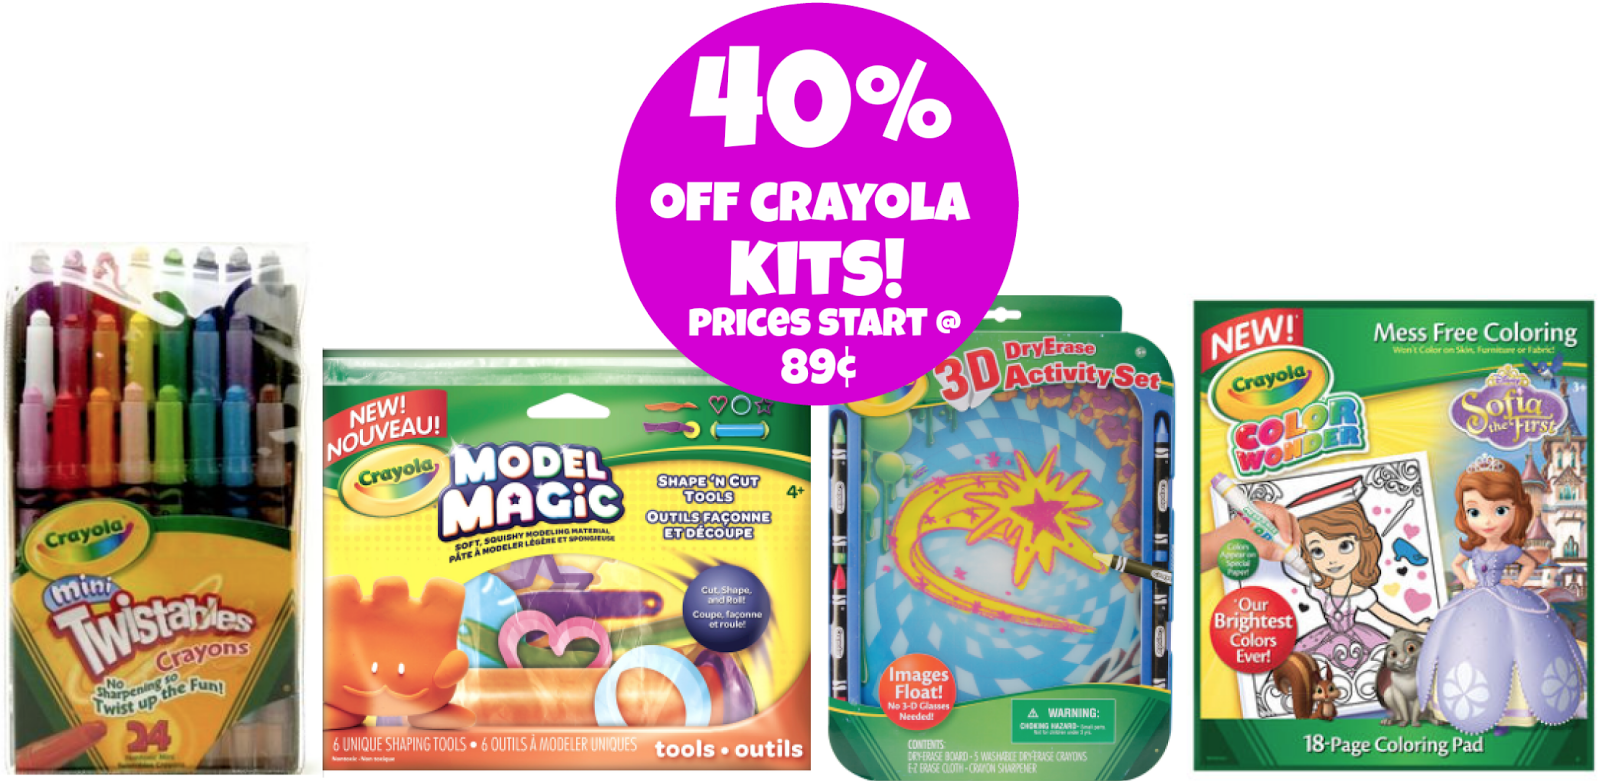 http://www.thebinderladies.com/2015/01/jo-anns-40-off-crayola-crafts-activity.html#.VLajhYfduyM